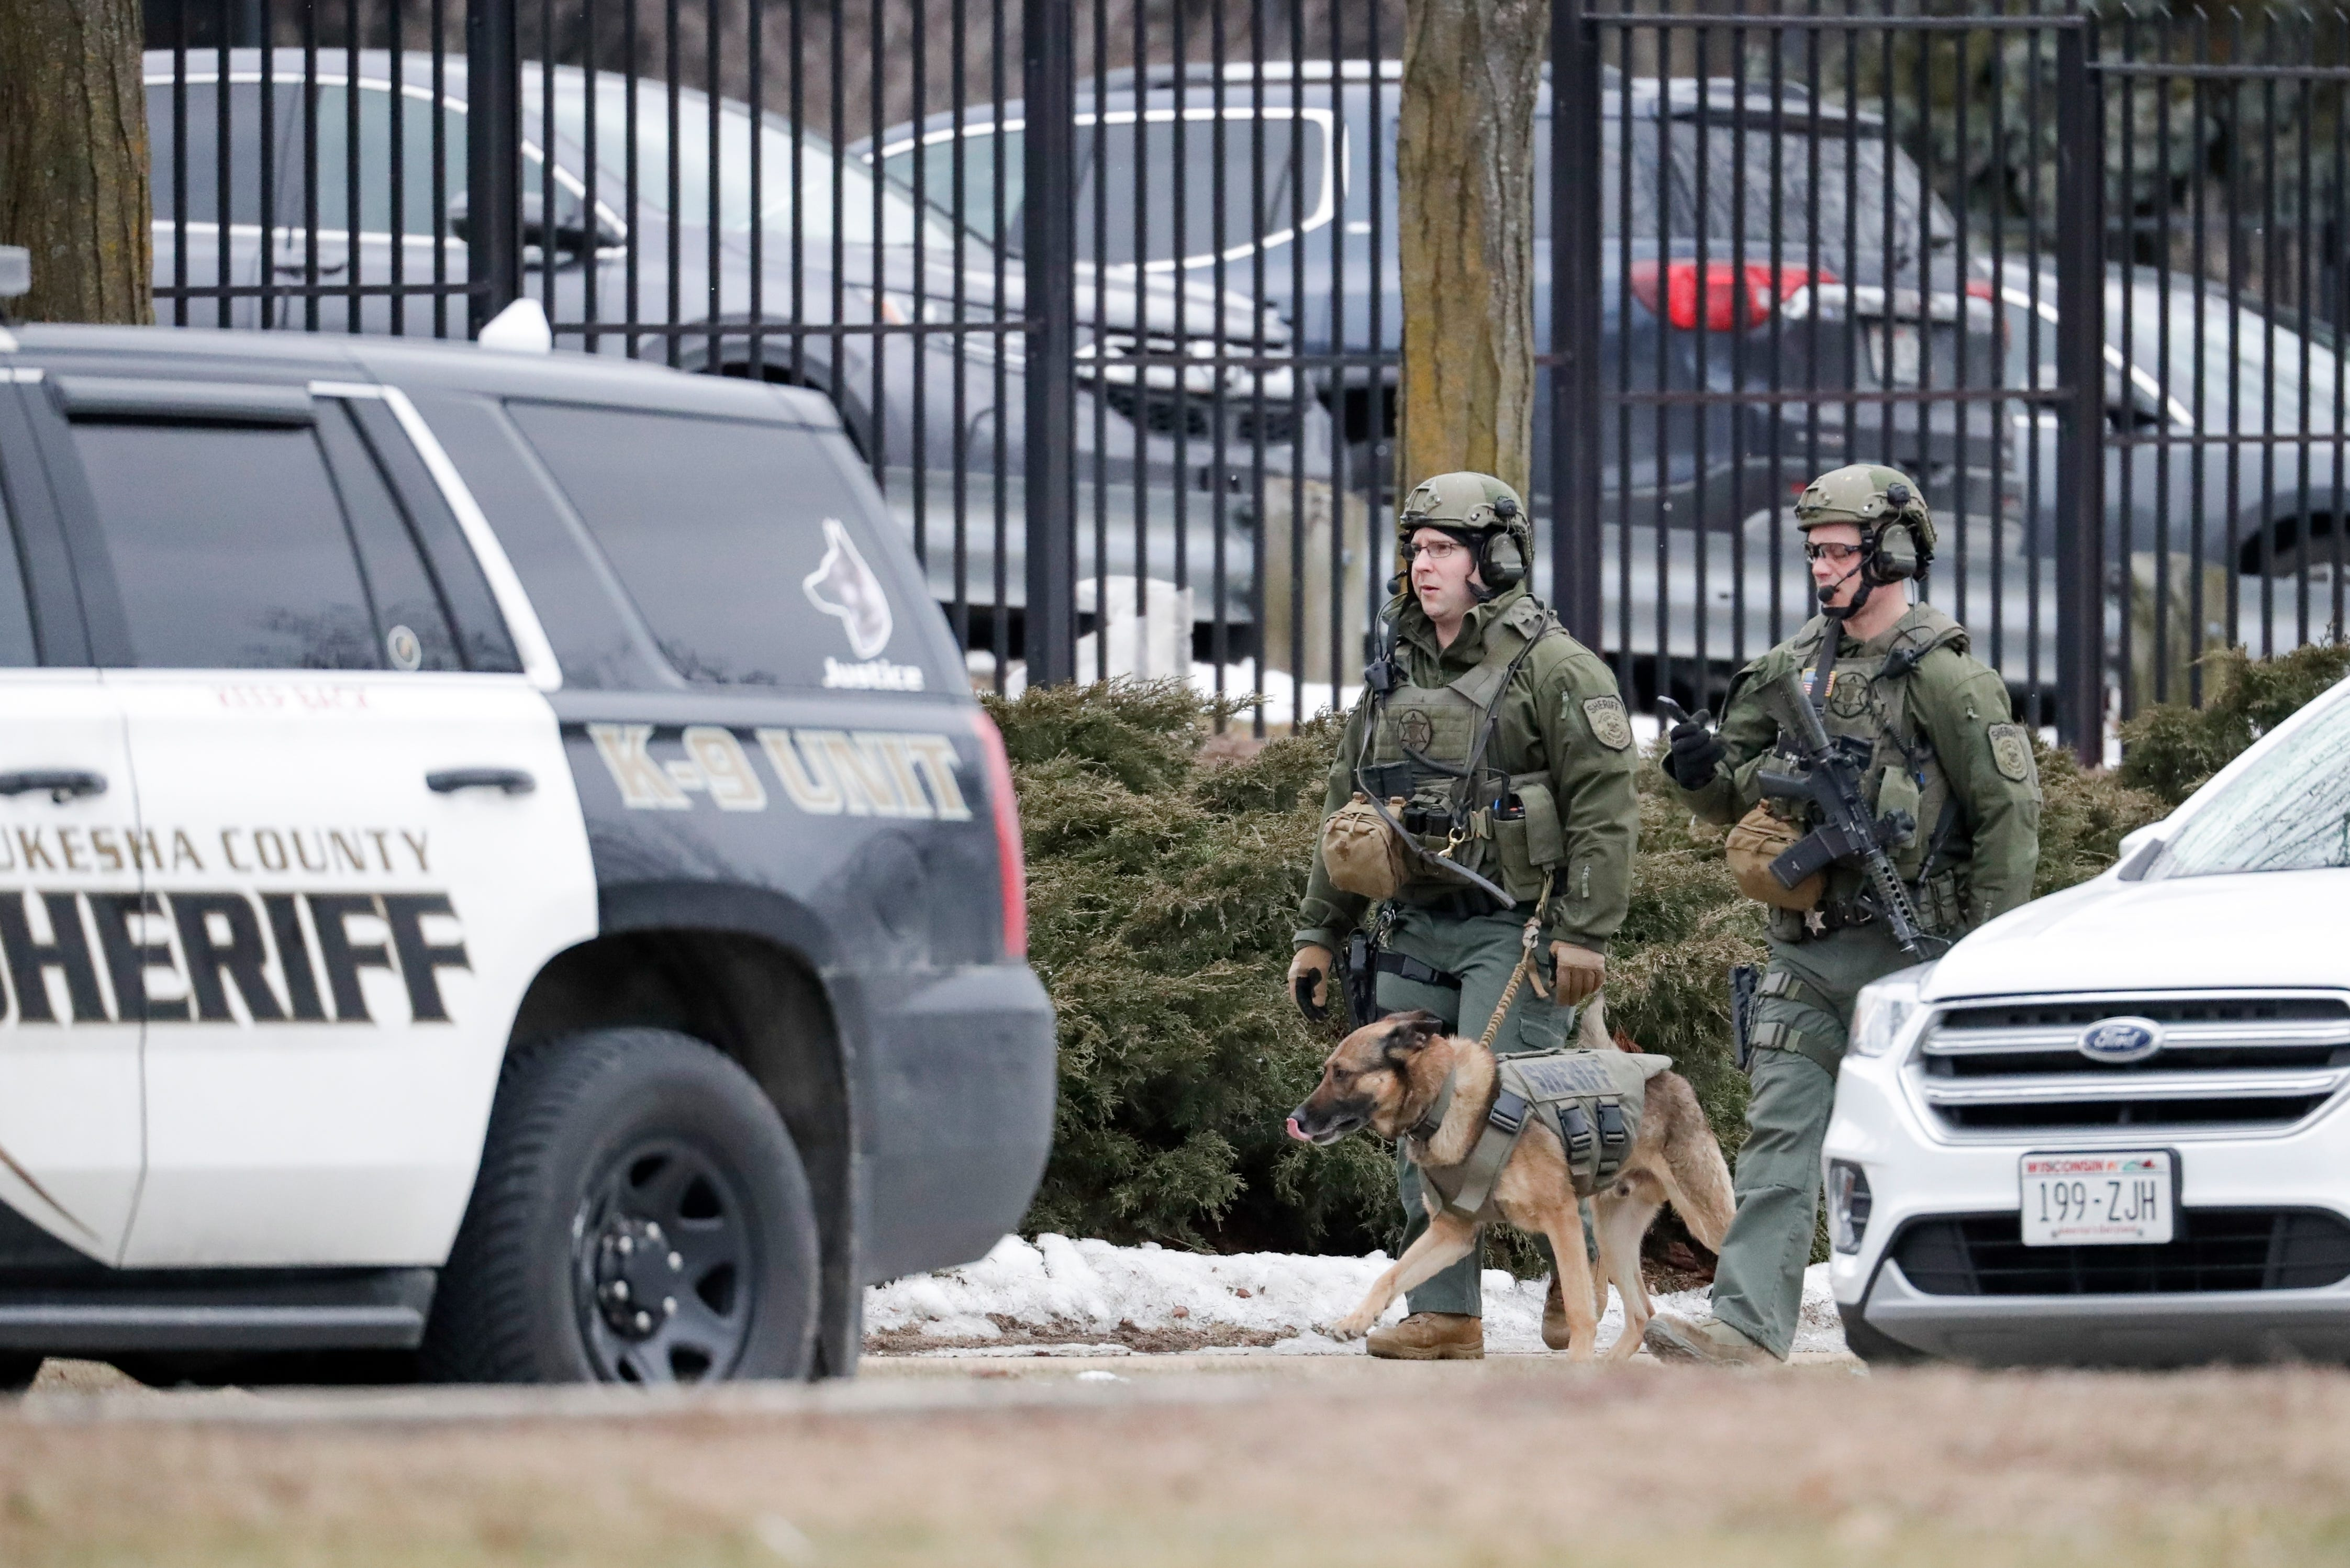 Milwaukee is grieving : What we know about Molson Coors shooting